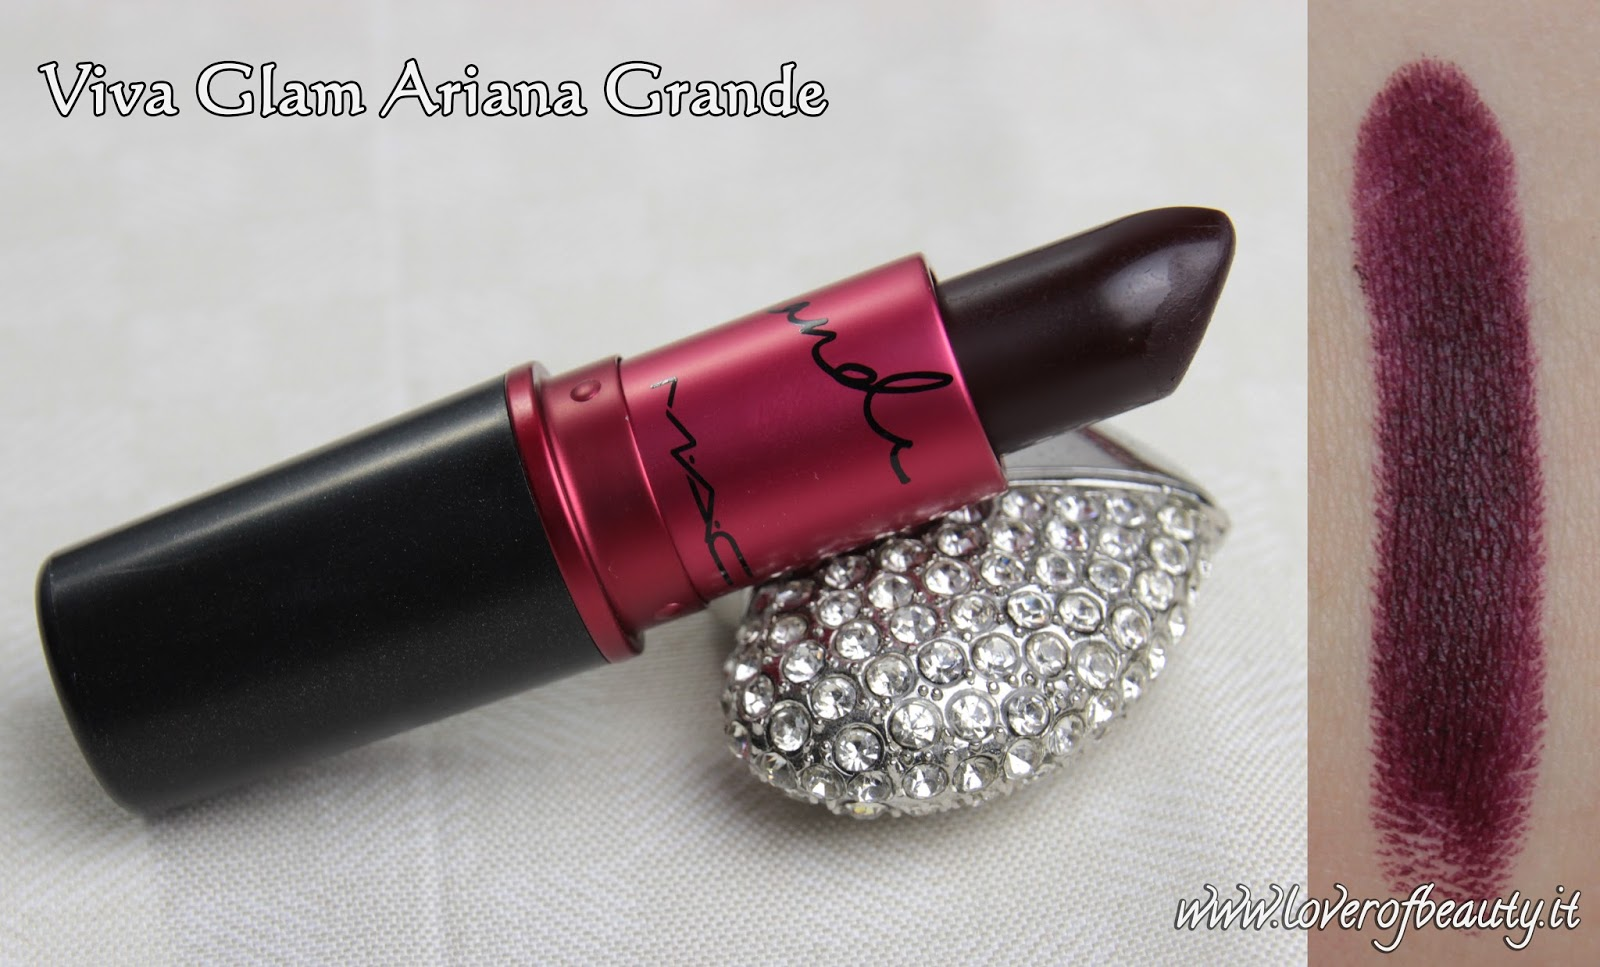 Recensione Beauty GrandeLover Ariana Of Glam MacViva I9WD2EH